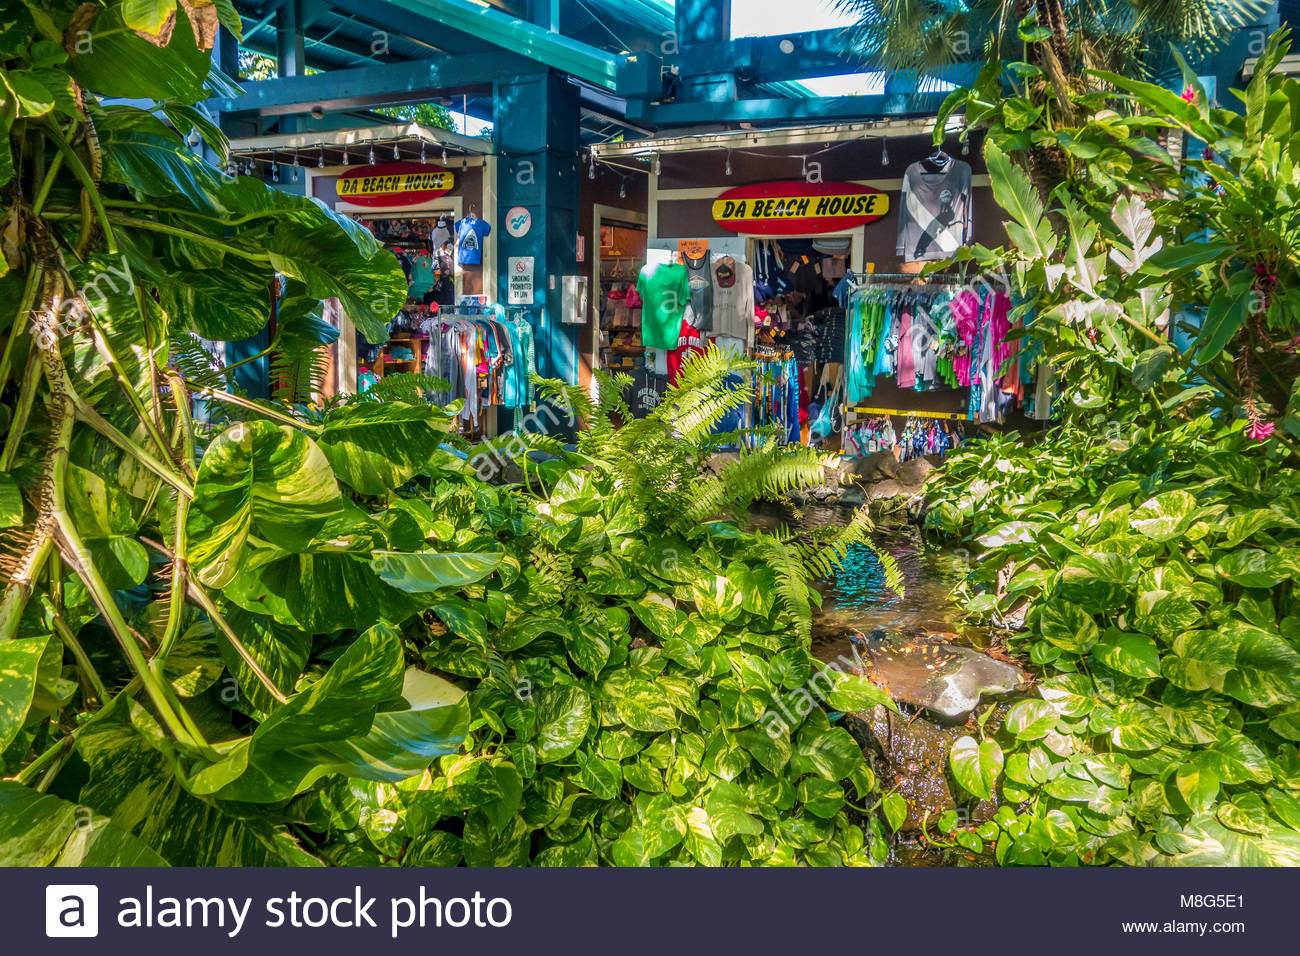 Magasin de vêtements de Kalama Village shopping center à Kihei île de Maui dans l'état de Photo Stock